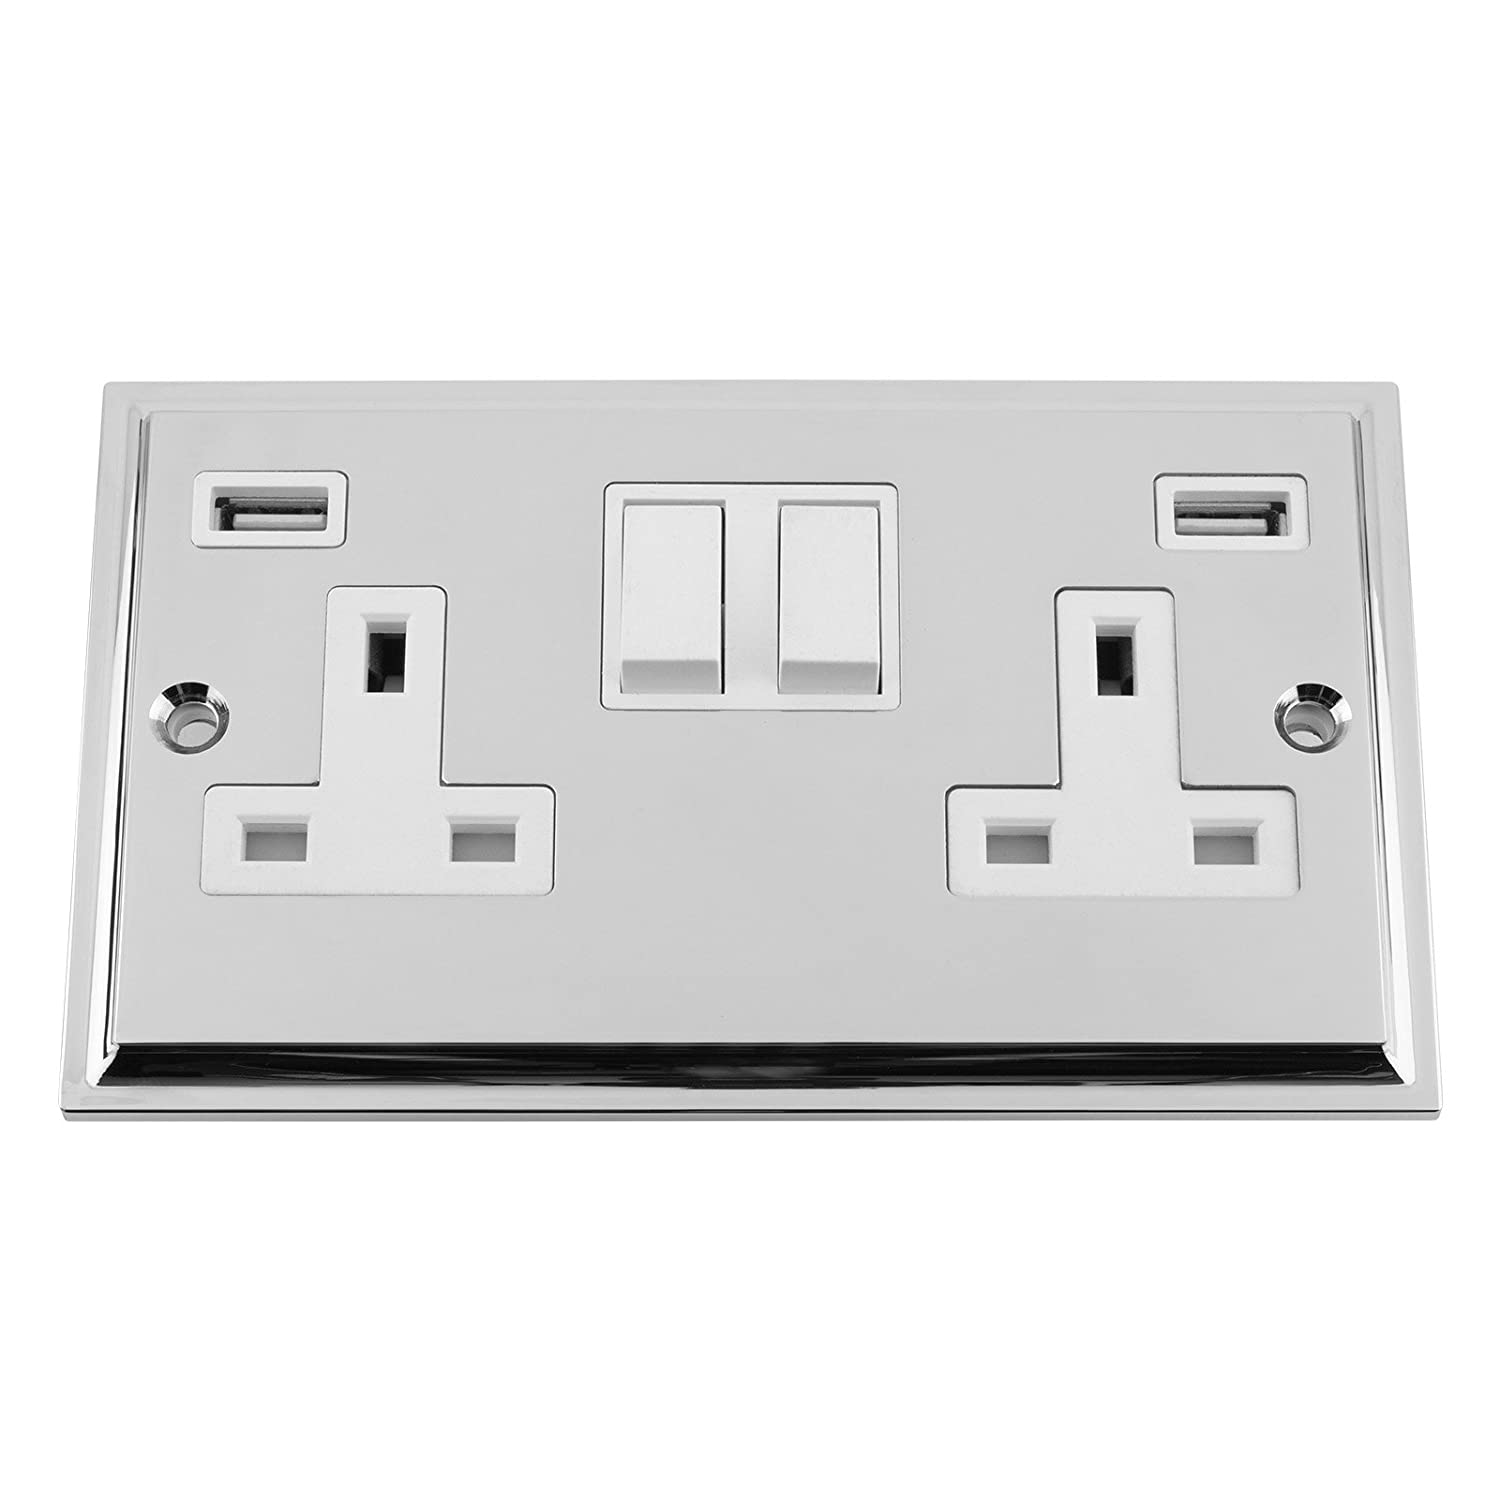 USB Socket 2 Gang - Polished Chrome - Victorian - White Insert Plastic Rocker Switch - 13A Double Wall Plug USB Socket 3 A5 Products Ltd